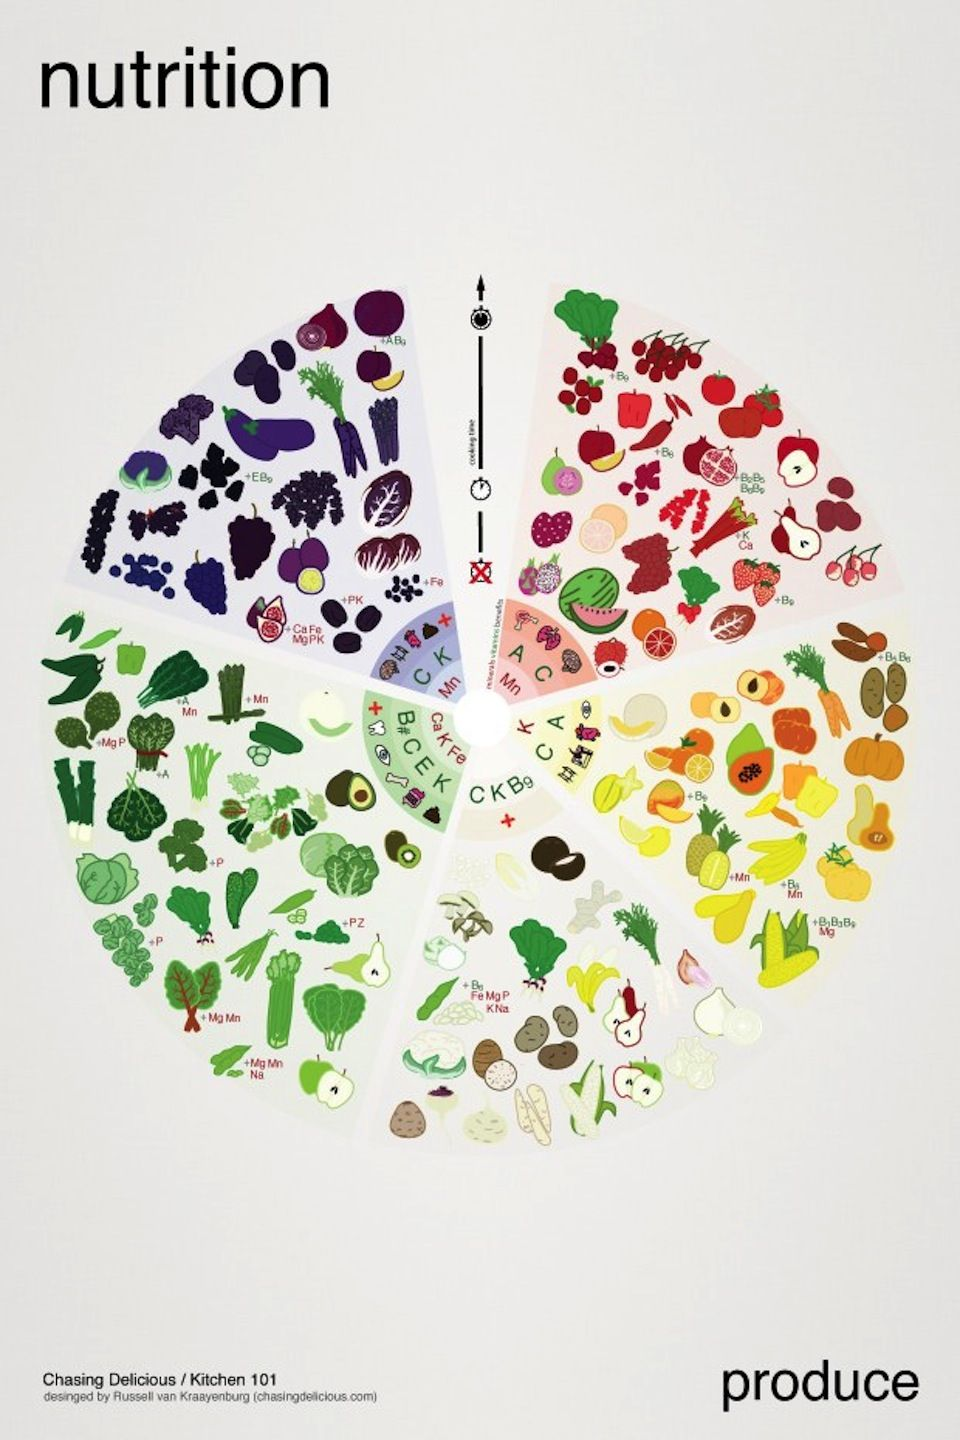 This ColorCoded Chart Helps You Pick The Most Nutritious Produce